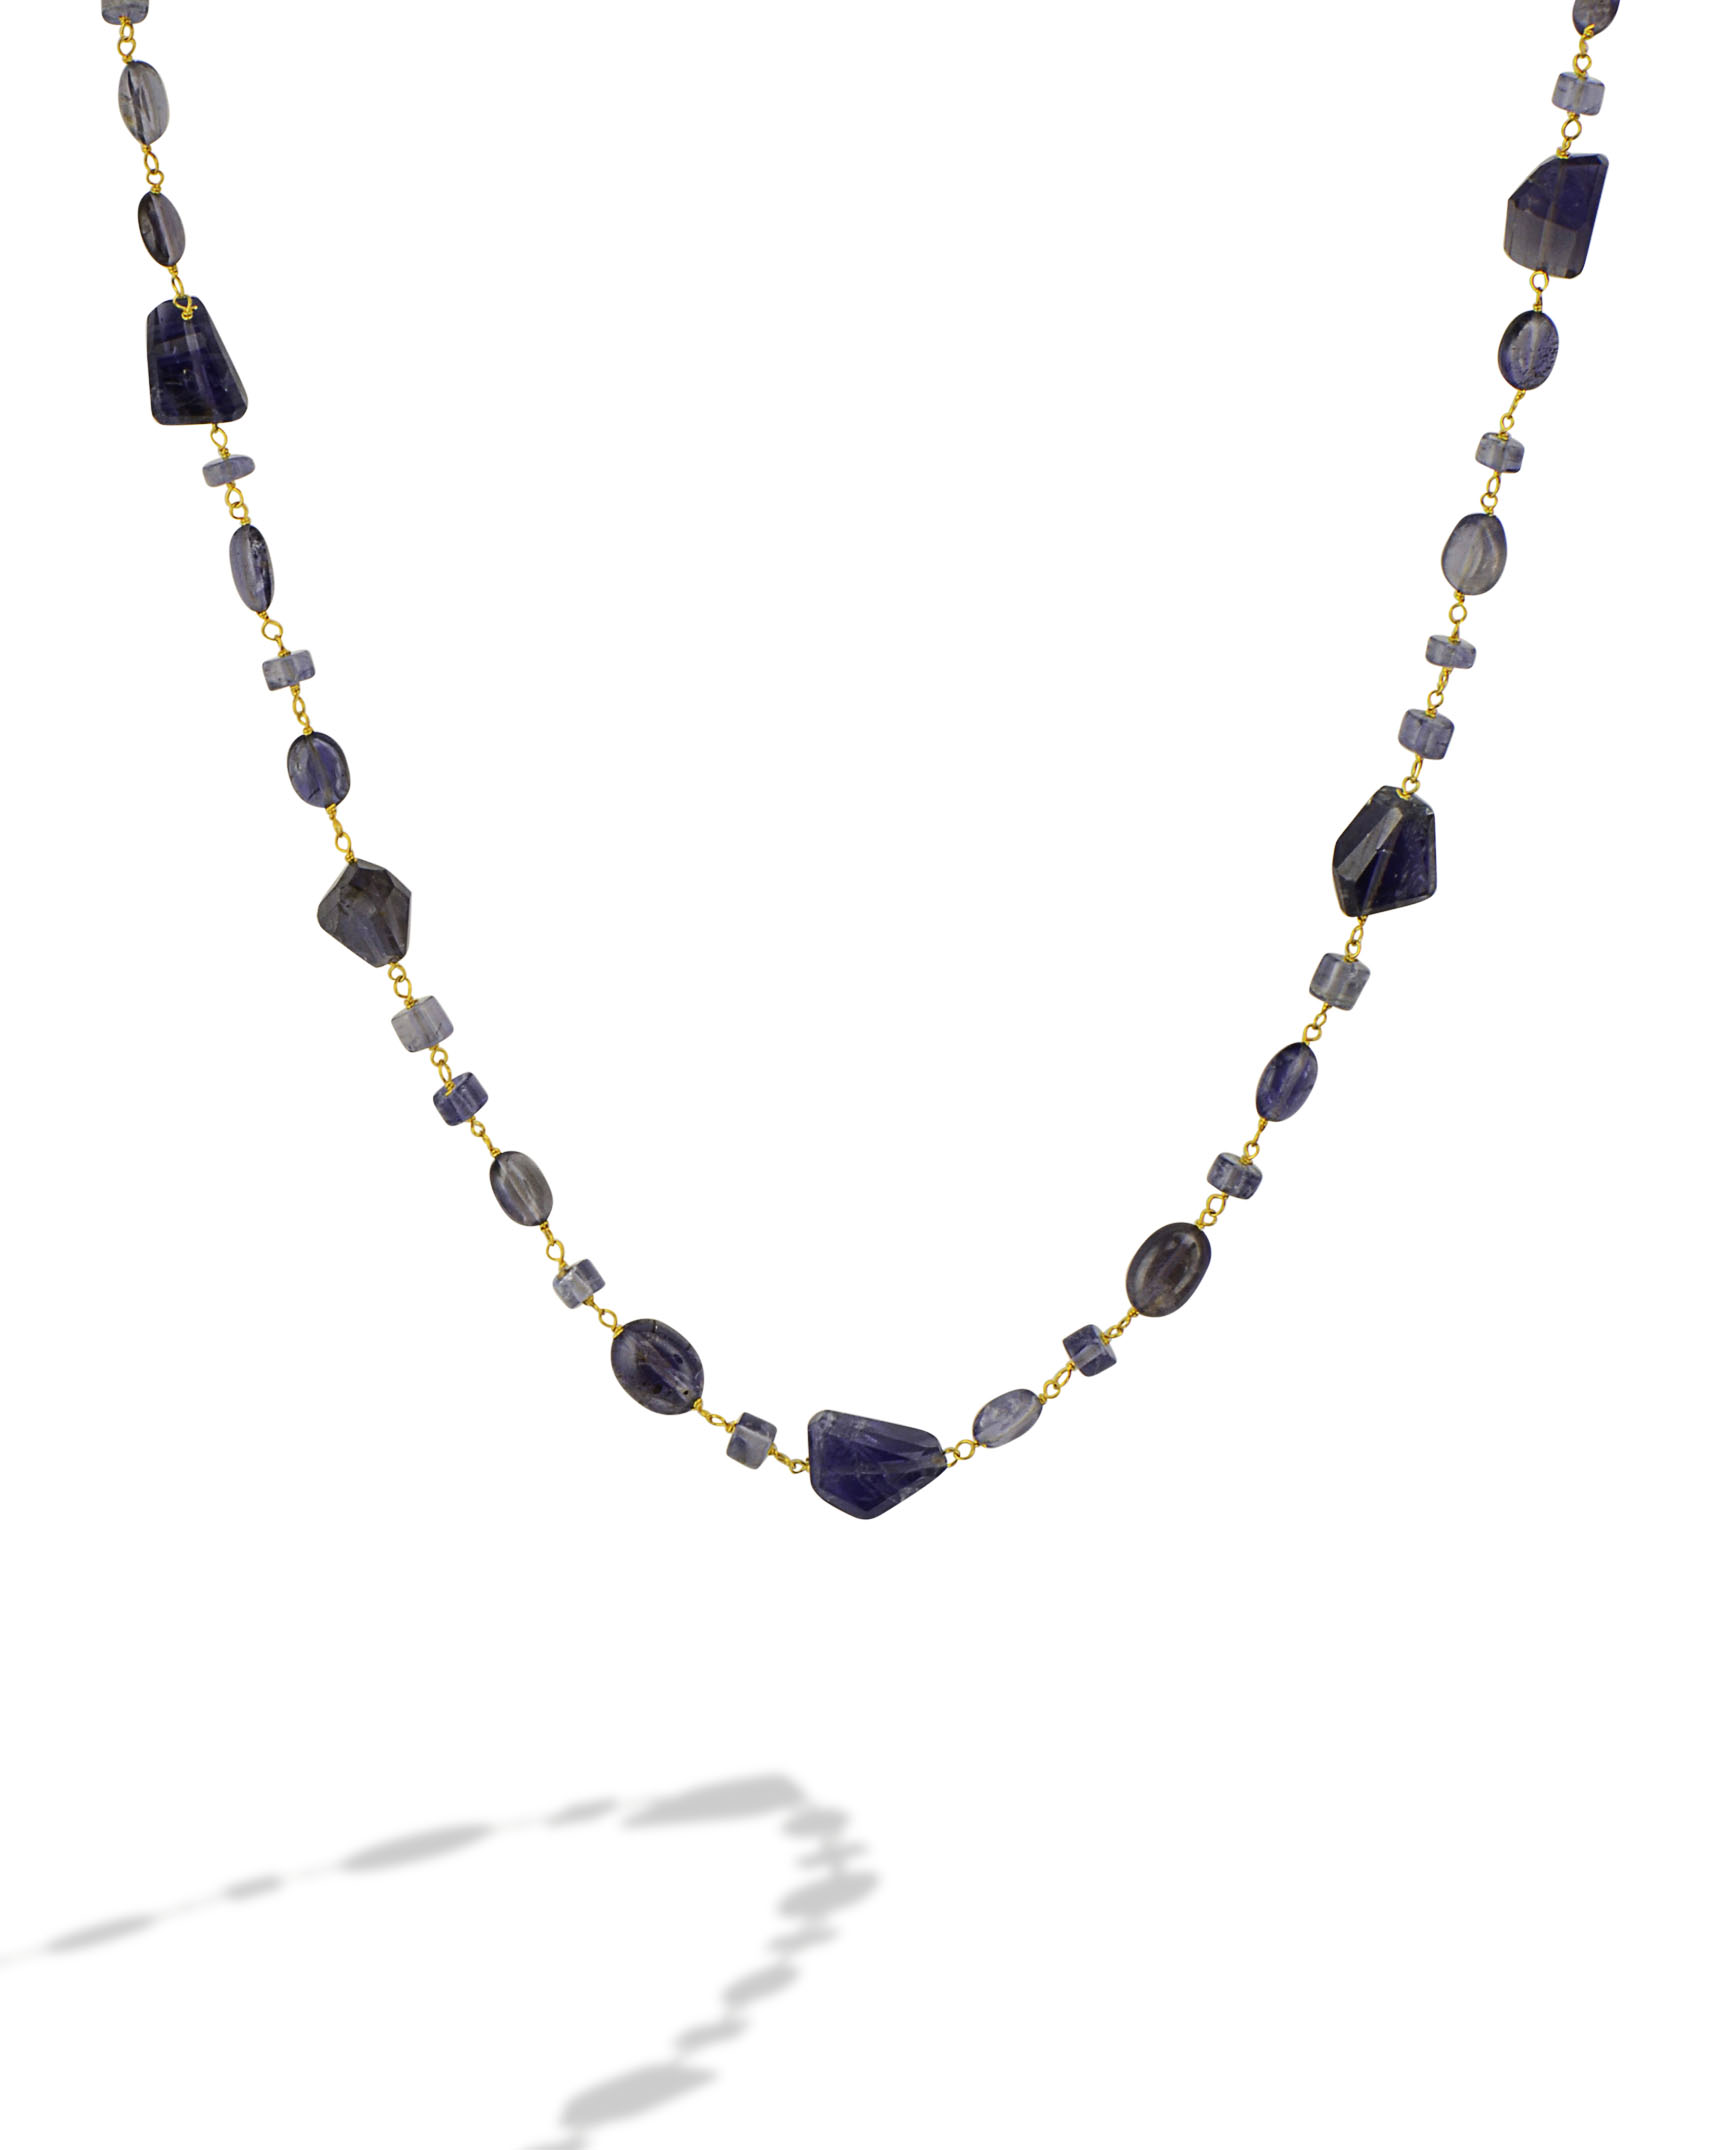 set silver iolite and quality p with gleam fine in royal cz handmade completely matching long earrings is necklace excellent very studded blue